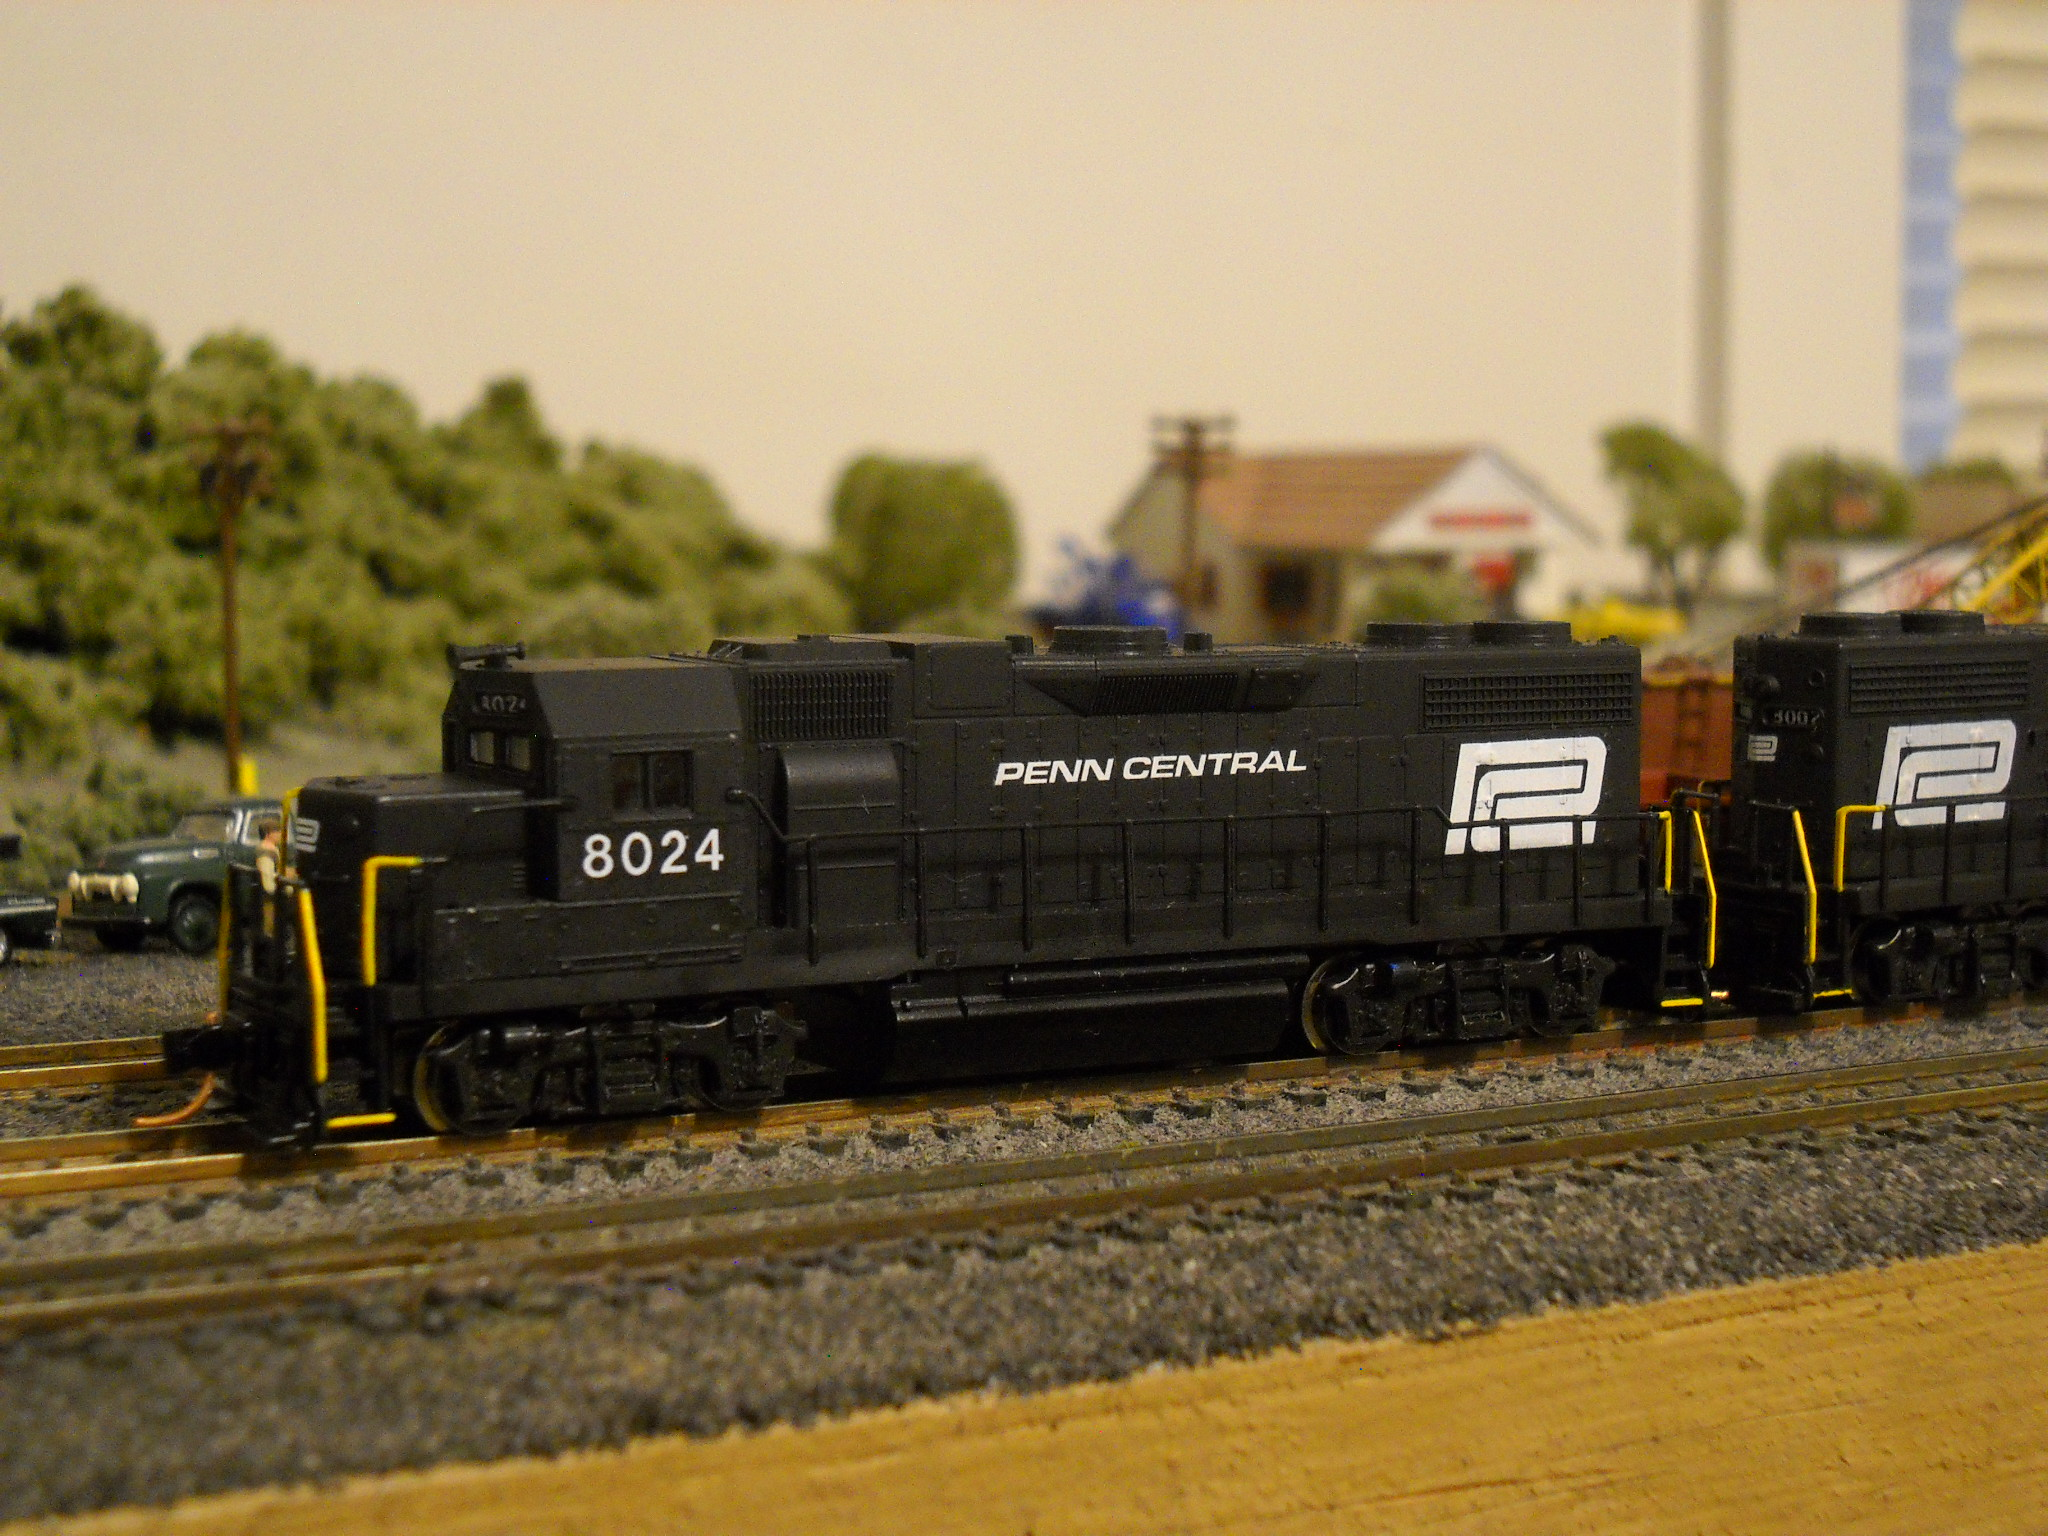 Introducing the Long Valley Industrial Railroad